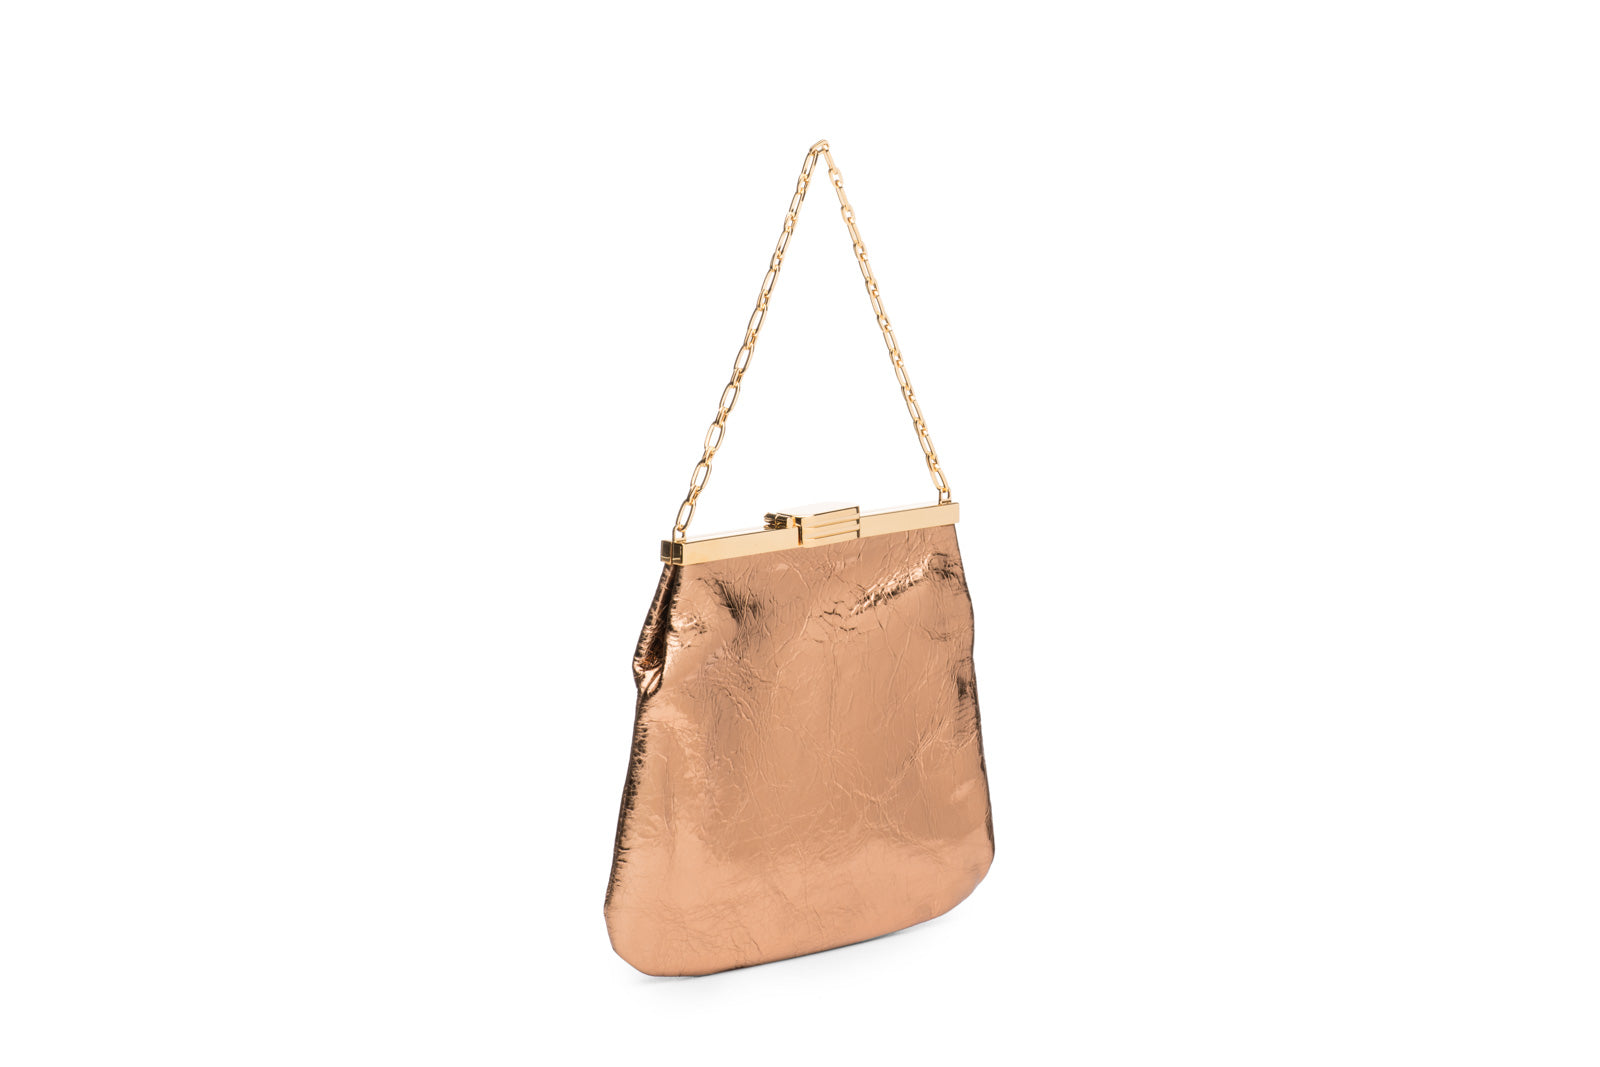 4 AM Bag in Blush Bronze Metallic Leather and 24k Gold Dipped Hardware